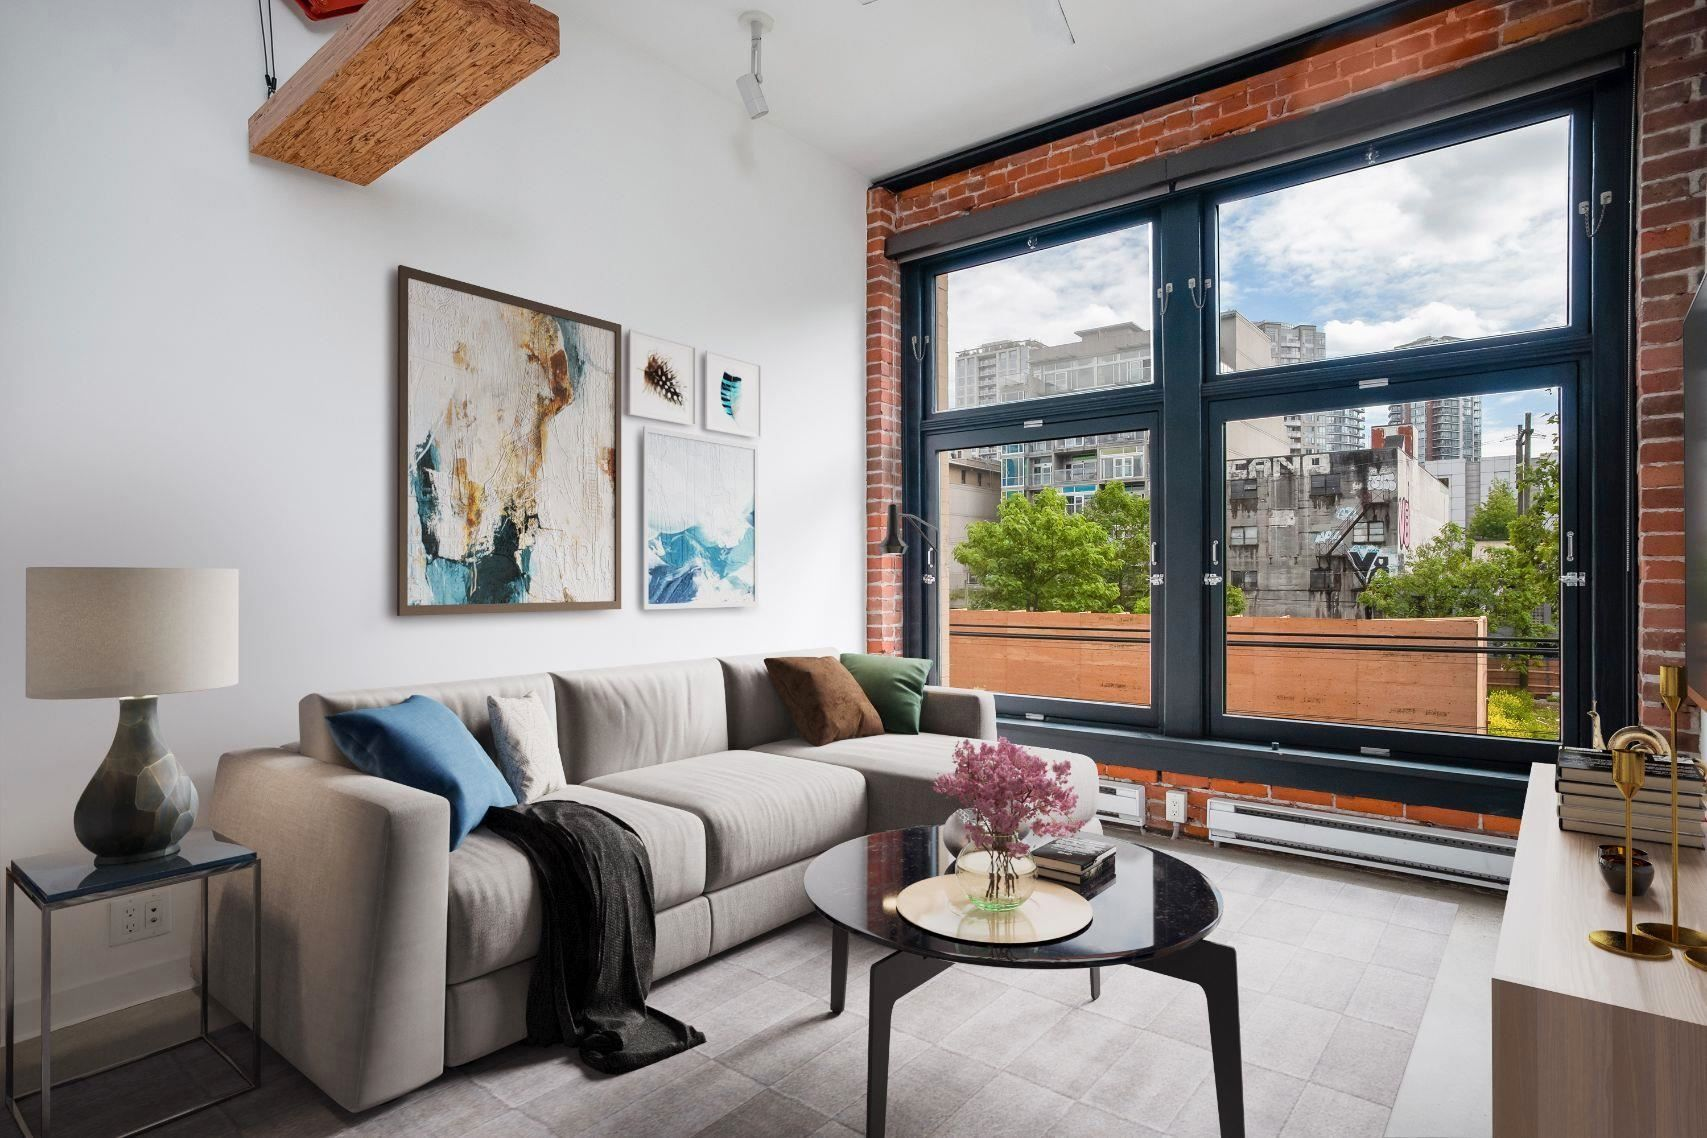 """Main Photo: 302 53 W HASTINGS Street in Vancouver: Downtown VW Condo for sale in """"PARIS BLOCK"""" (Vancouver West)  : MLS®# R2608503"""